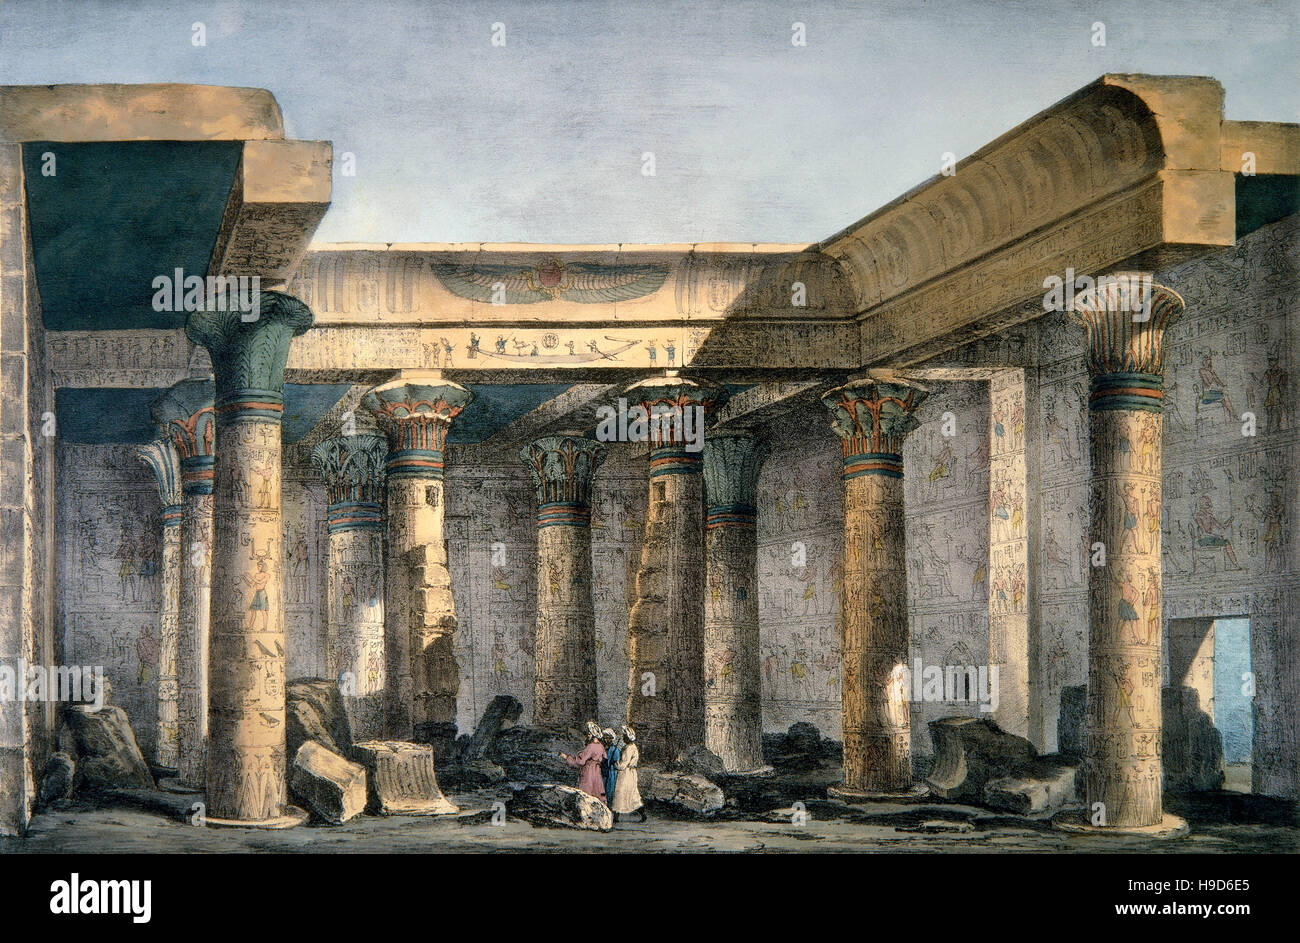 Ancient greek temple interior - Engraving 19th Century Interior Of A Temple On The Island Of Philae